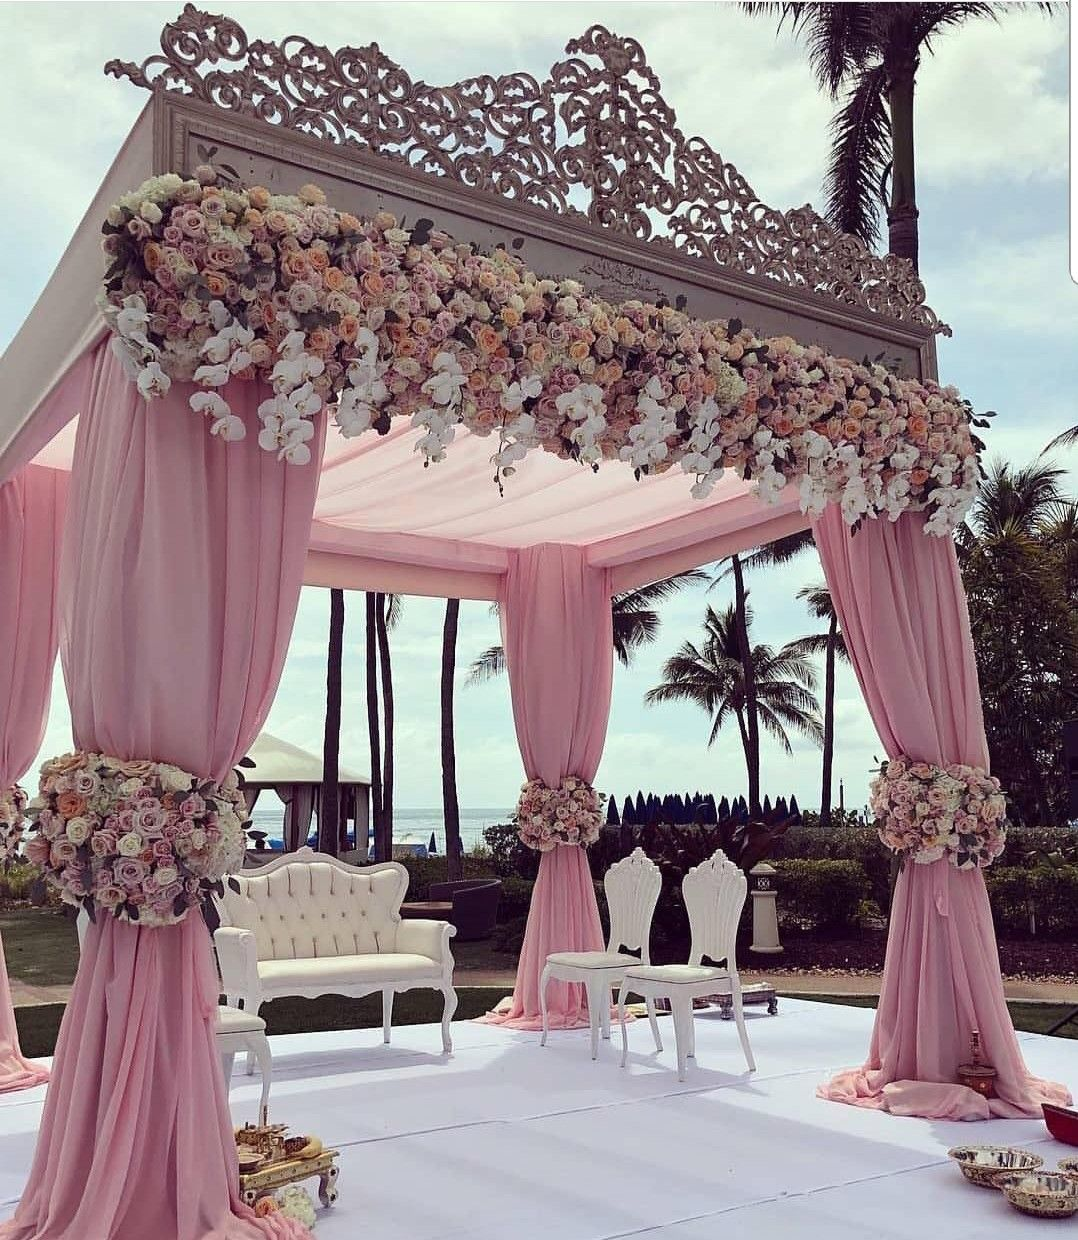 Wedding decorations nigeria october 2018 Pin by Leah Rose Sharp on Party inspo in   Pinterest  Wedding